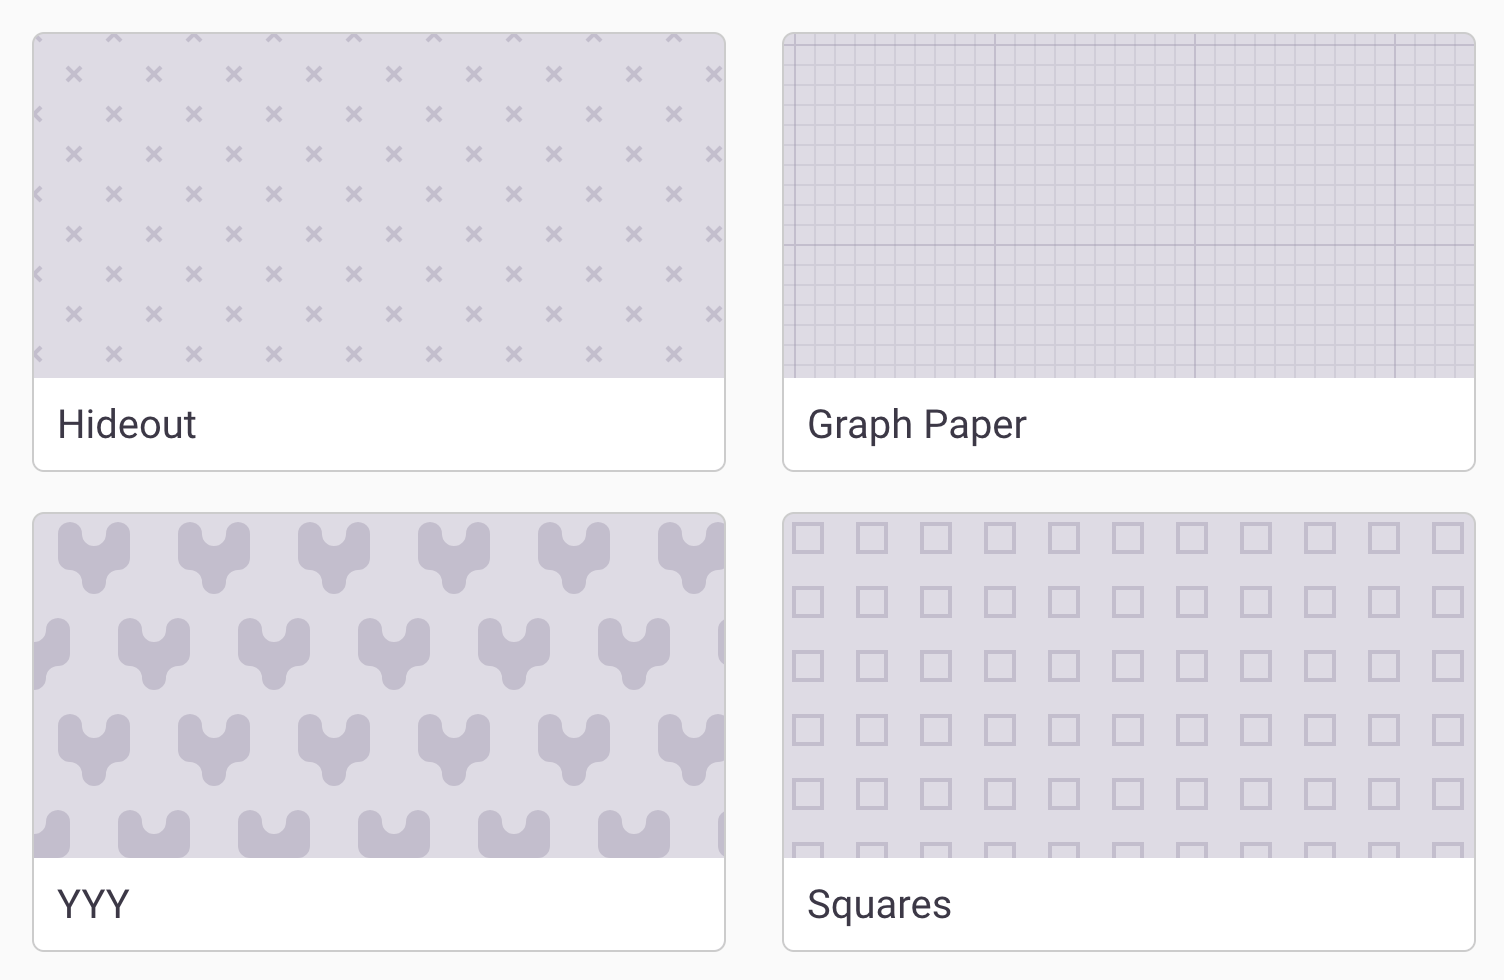 Simple Patterns for Separation (Better Than Color Alone